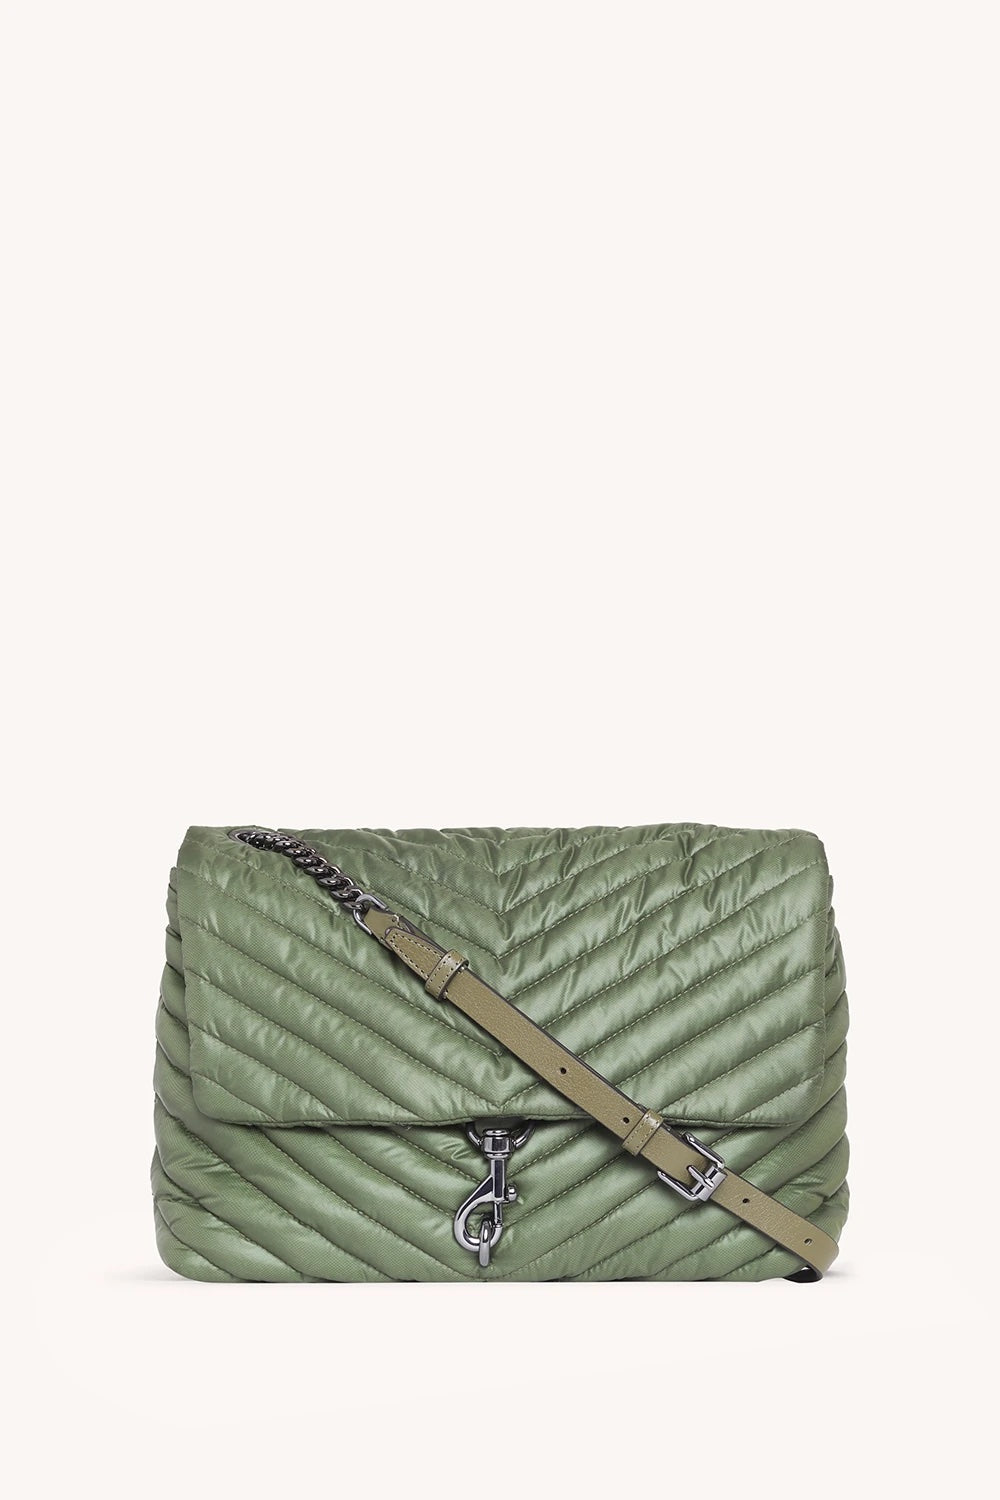 EDIE NYLON JUMBO FLAP SHOULDER BAG